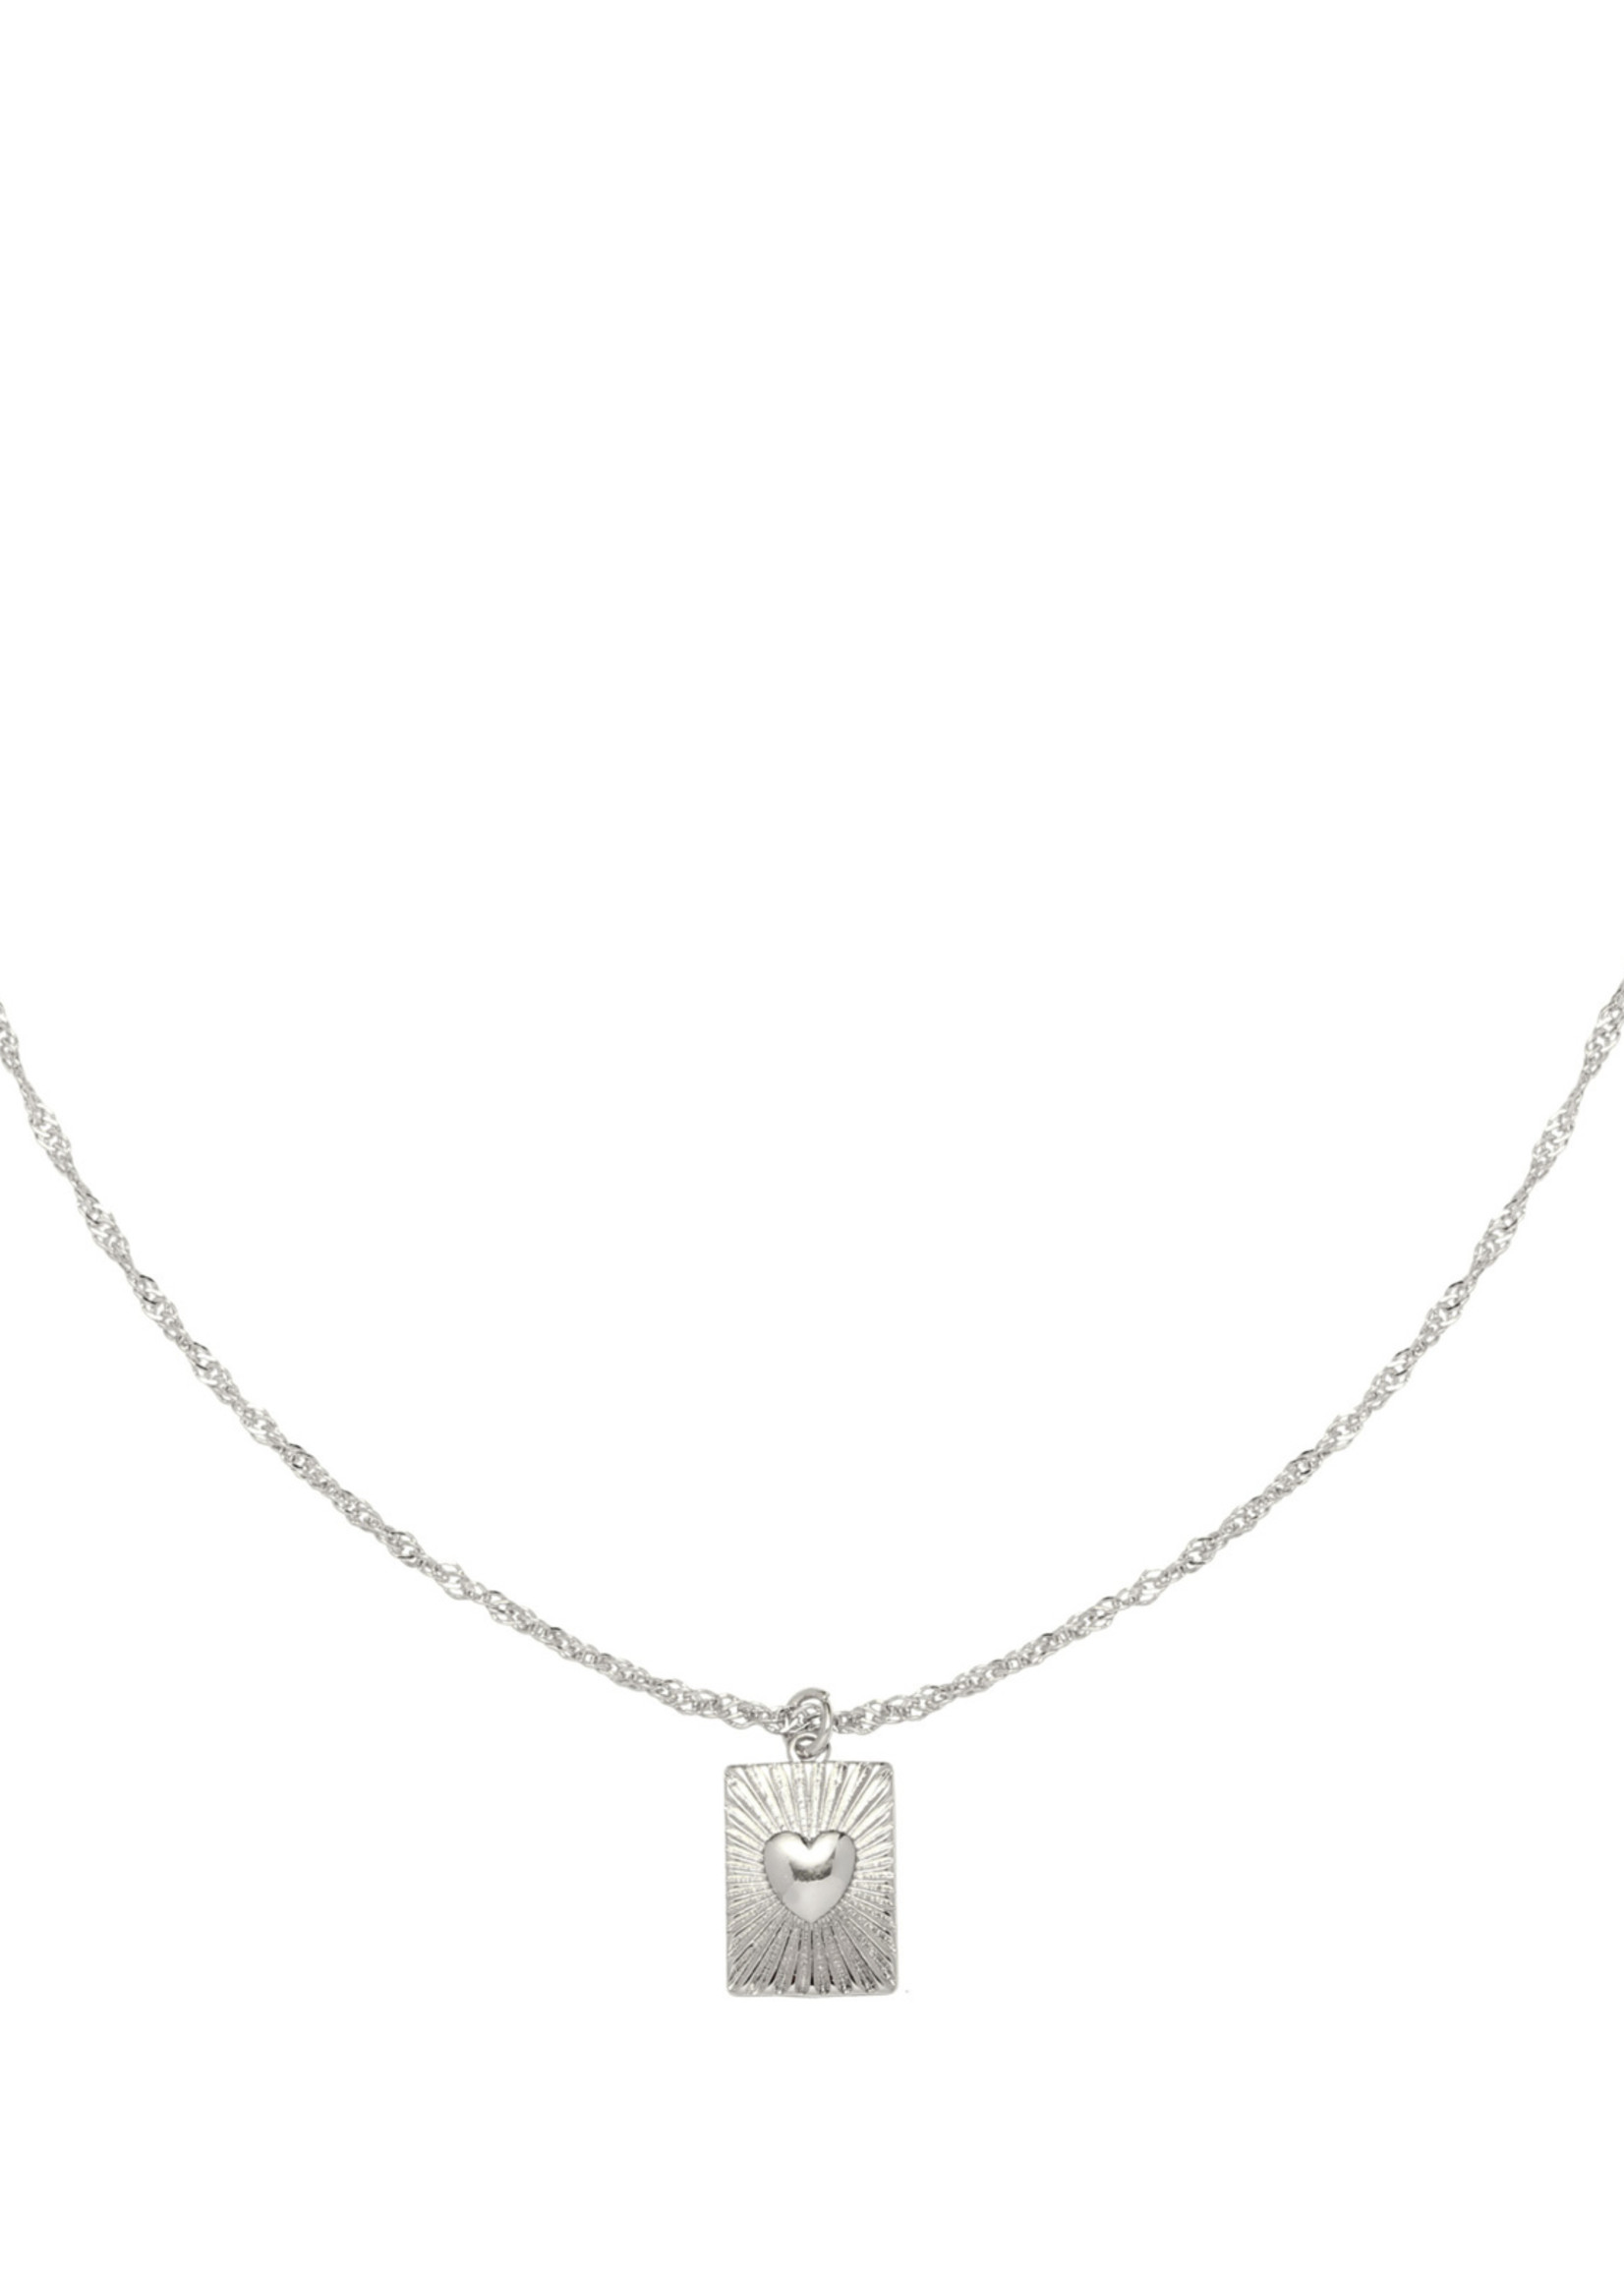 SHOW ME LOVE KETTING ZILVER